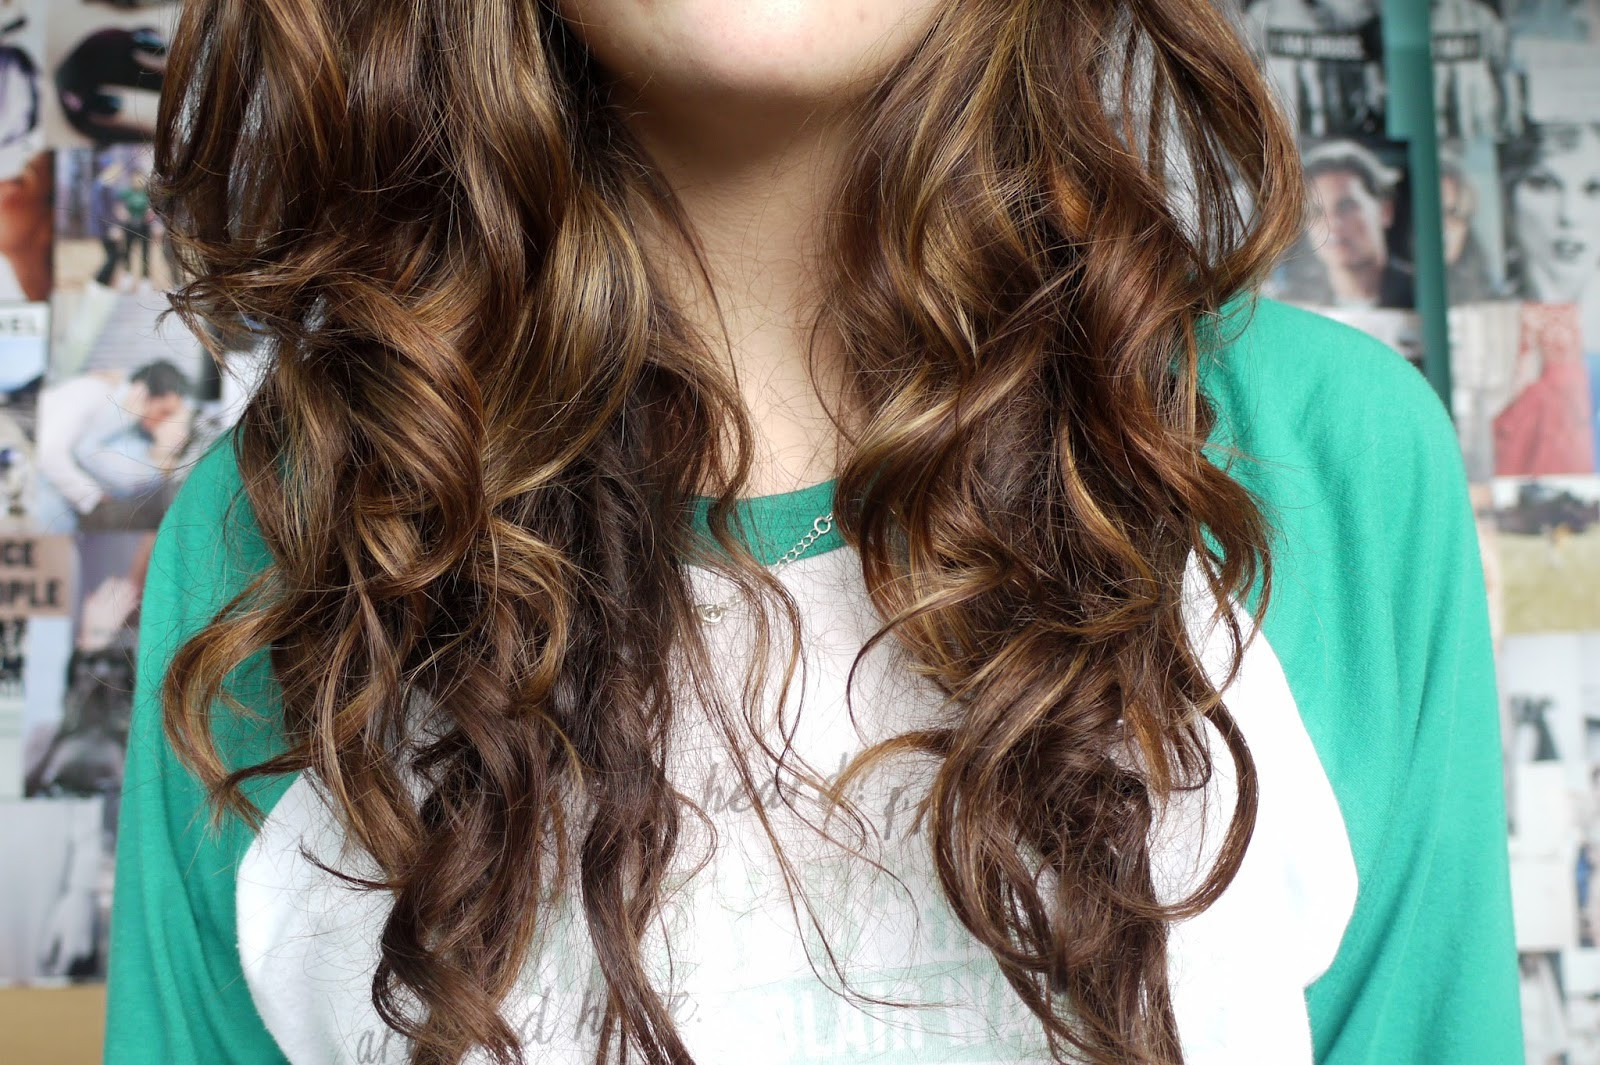 Best ideas about Easy Overnight Hairstyles . Save or Pin KJ Easy Overnight Curls Tutorial Now.